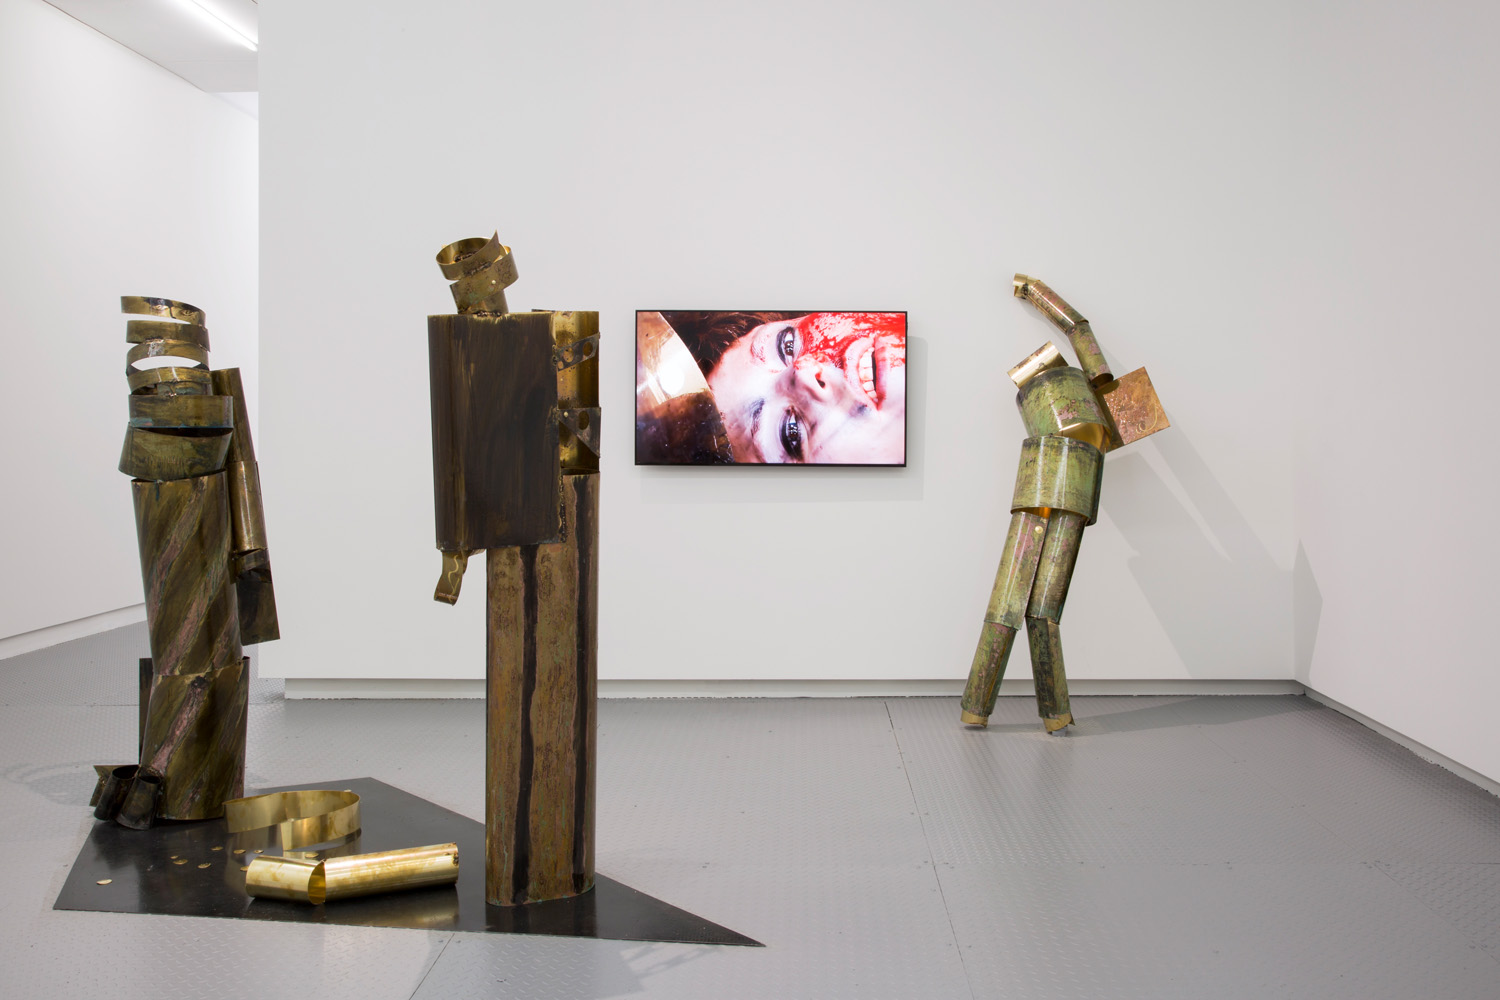 """Caroline Mesquita,   Green-dressed Woman  ,  2017, Oxidized brass with resin,  68"""" x 19"""" x 10"""";  The Young Businessman 2 , 2017, Oxidized brass with resin, 70"""" x 18"""" x 13"""";  The Ballad , 2017, Digital video with colour and sound, 29:00 min;  The Mechanic 2 , 2017, Oxidized brass with resin, 30"""" x 27"""" x 53"""", Courtesy of carlier 